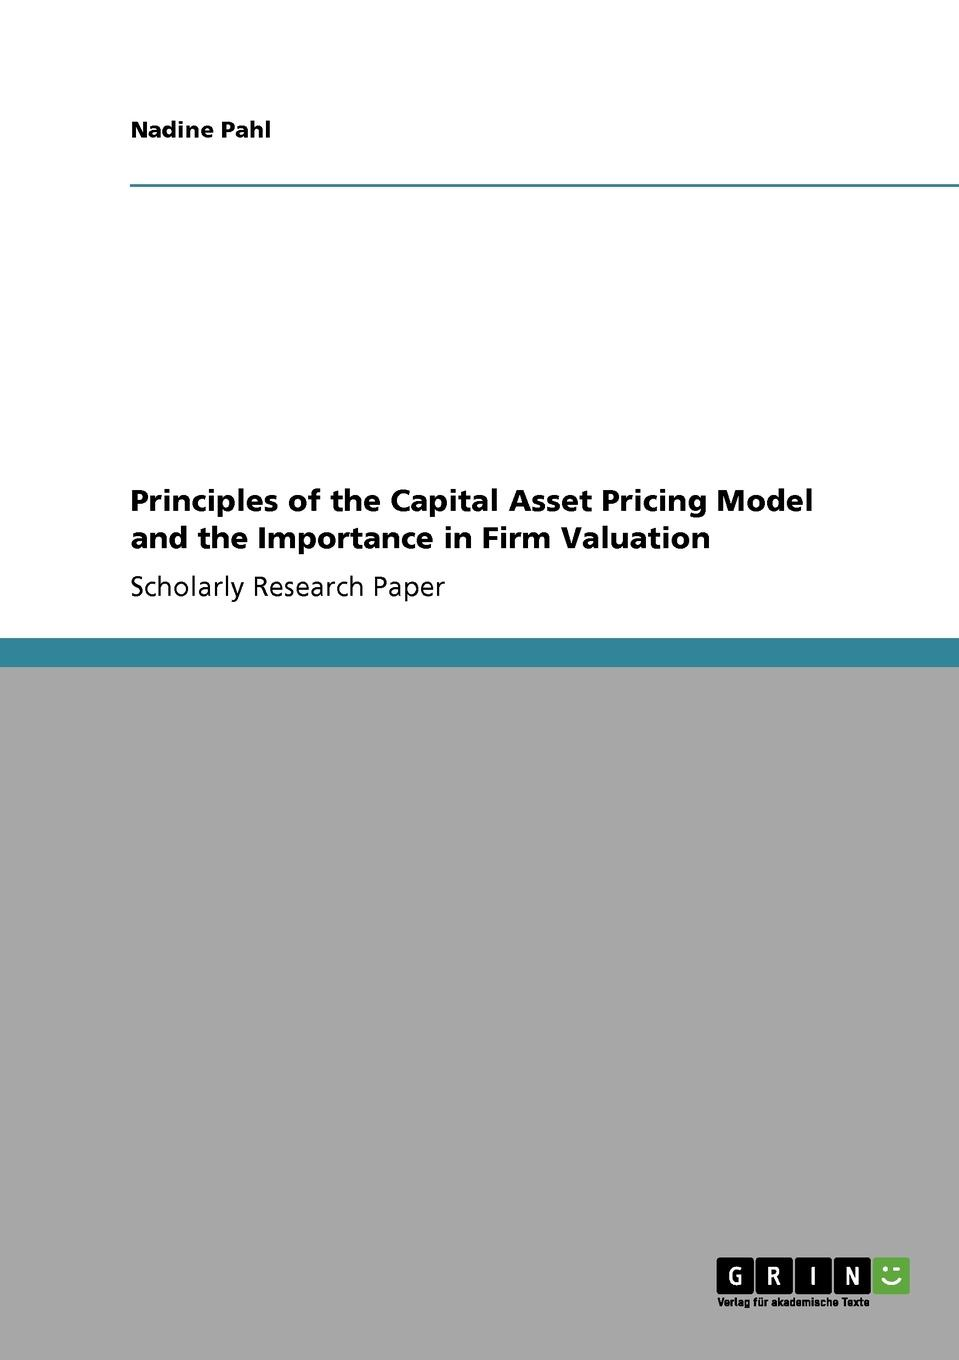 Nadine Pahl Principles of the Capital Asset Pricing Model and the Importance in Firm Valuation